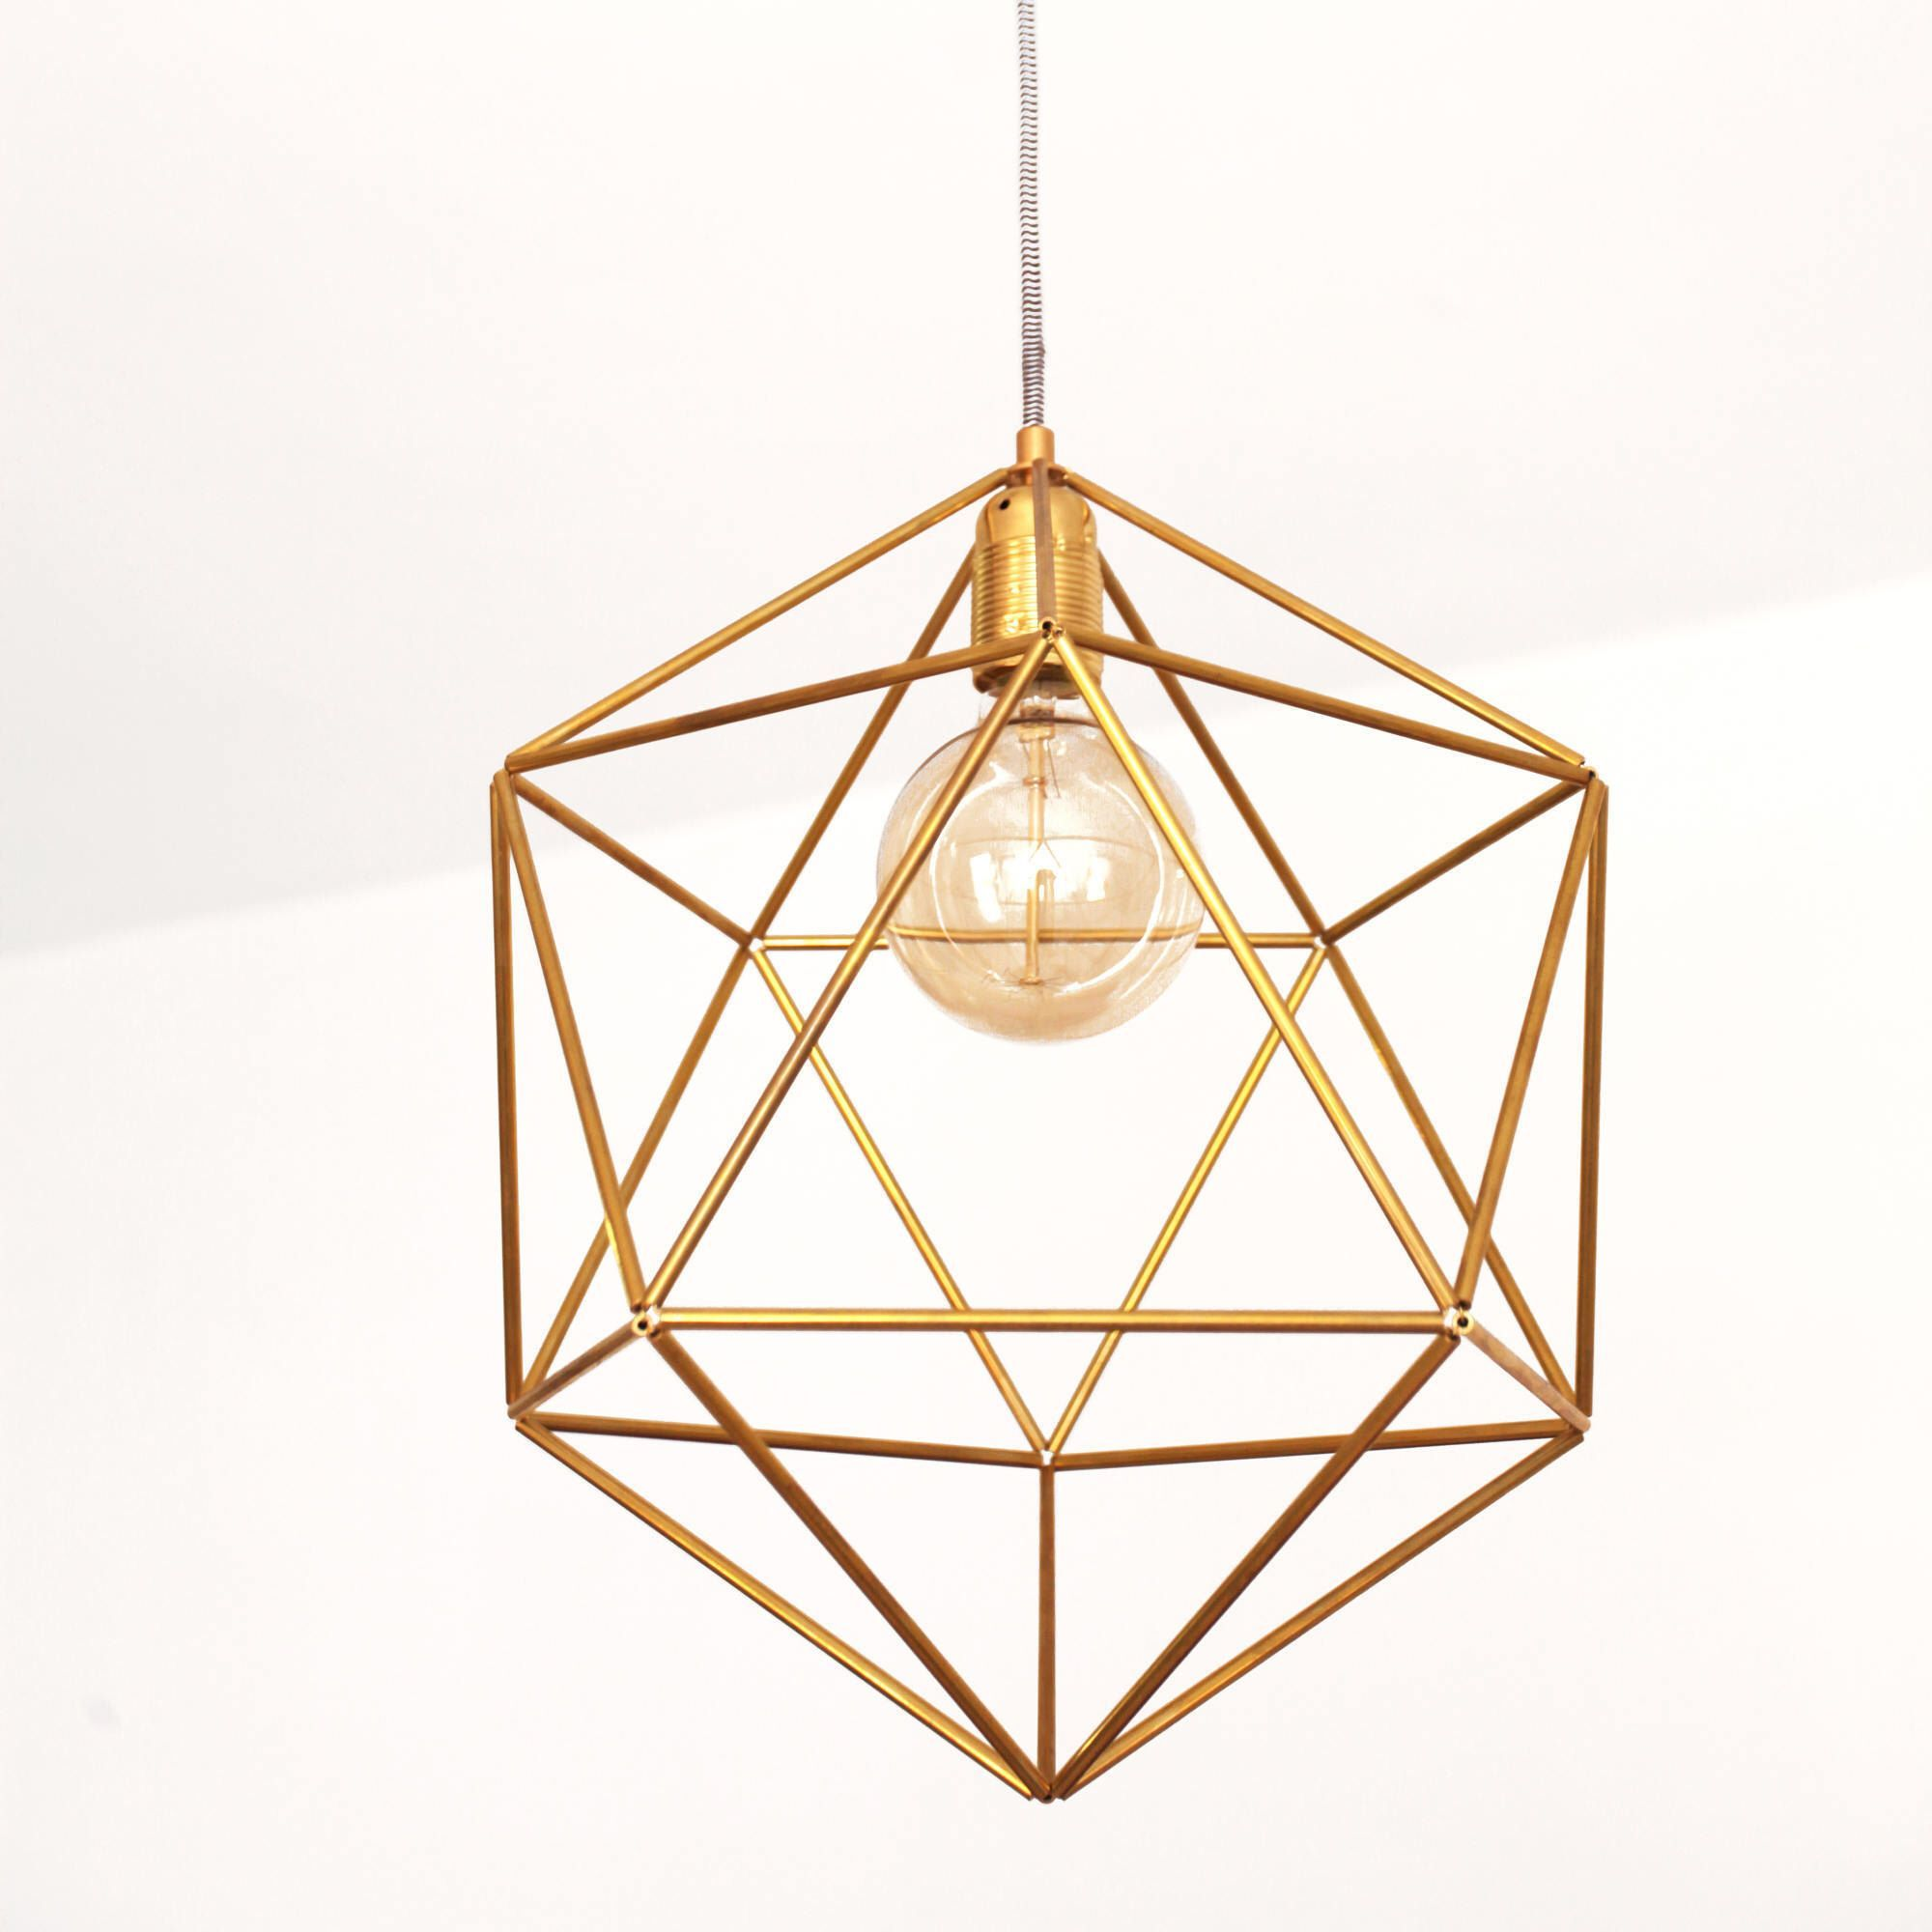 Large Ceiling Light Fixture Cage Brass Pendant Lamp Shade Geometric Chandelier Light Mo In 2020 Modern Ceiling Light Ceiling Lights Modern Ceiling Light Fixtures